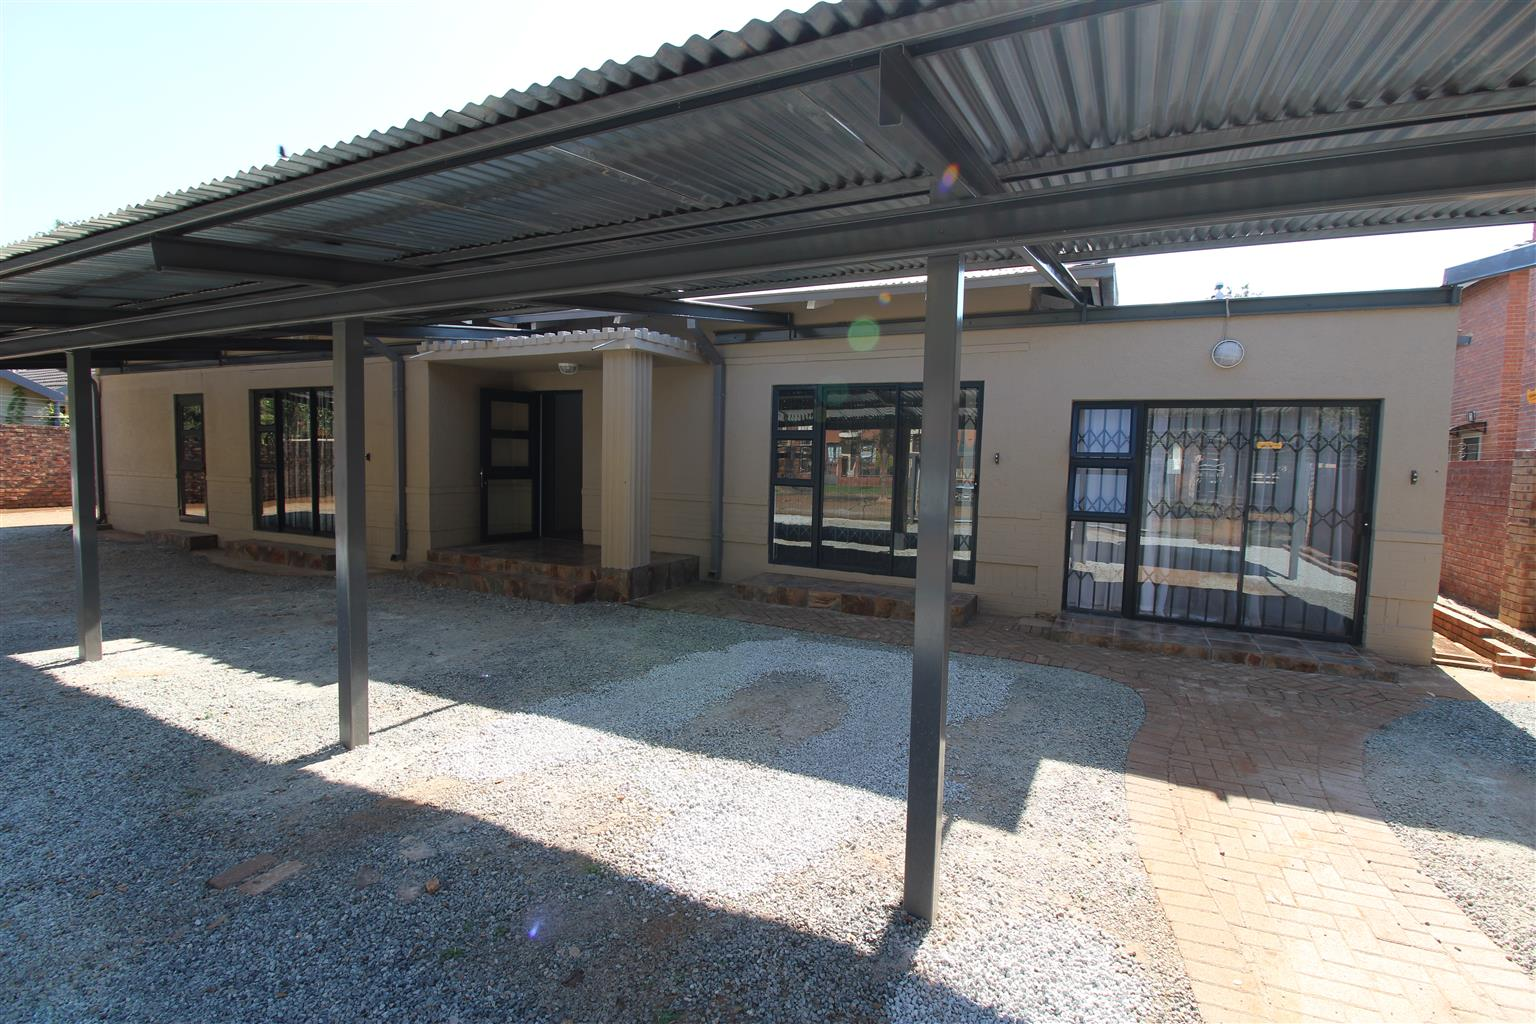 9 Bedroom, 7 Bathroom, 7 Kitchen Student House for Sale in The Bult area close to NWU, Potchefstroom